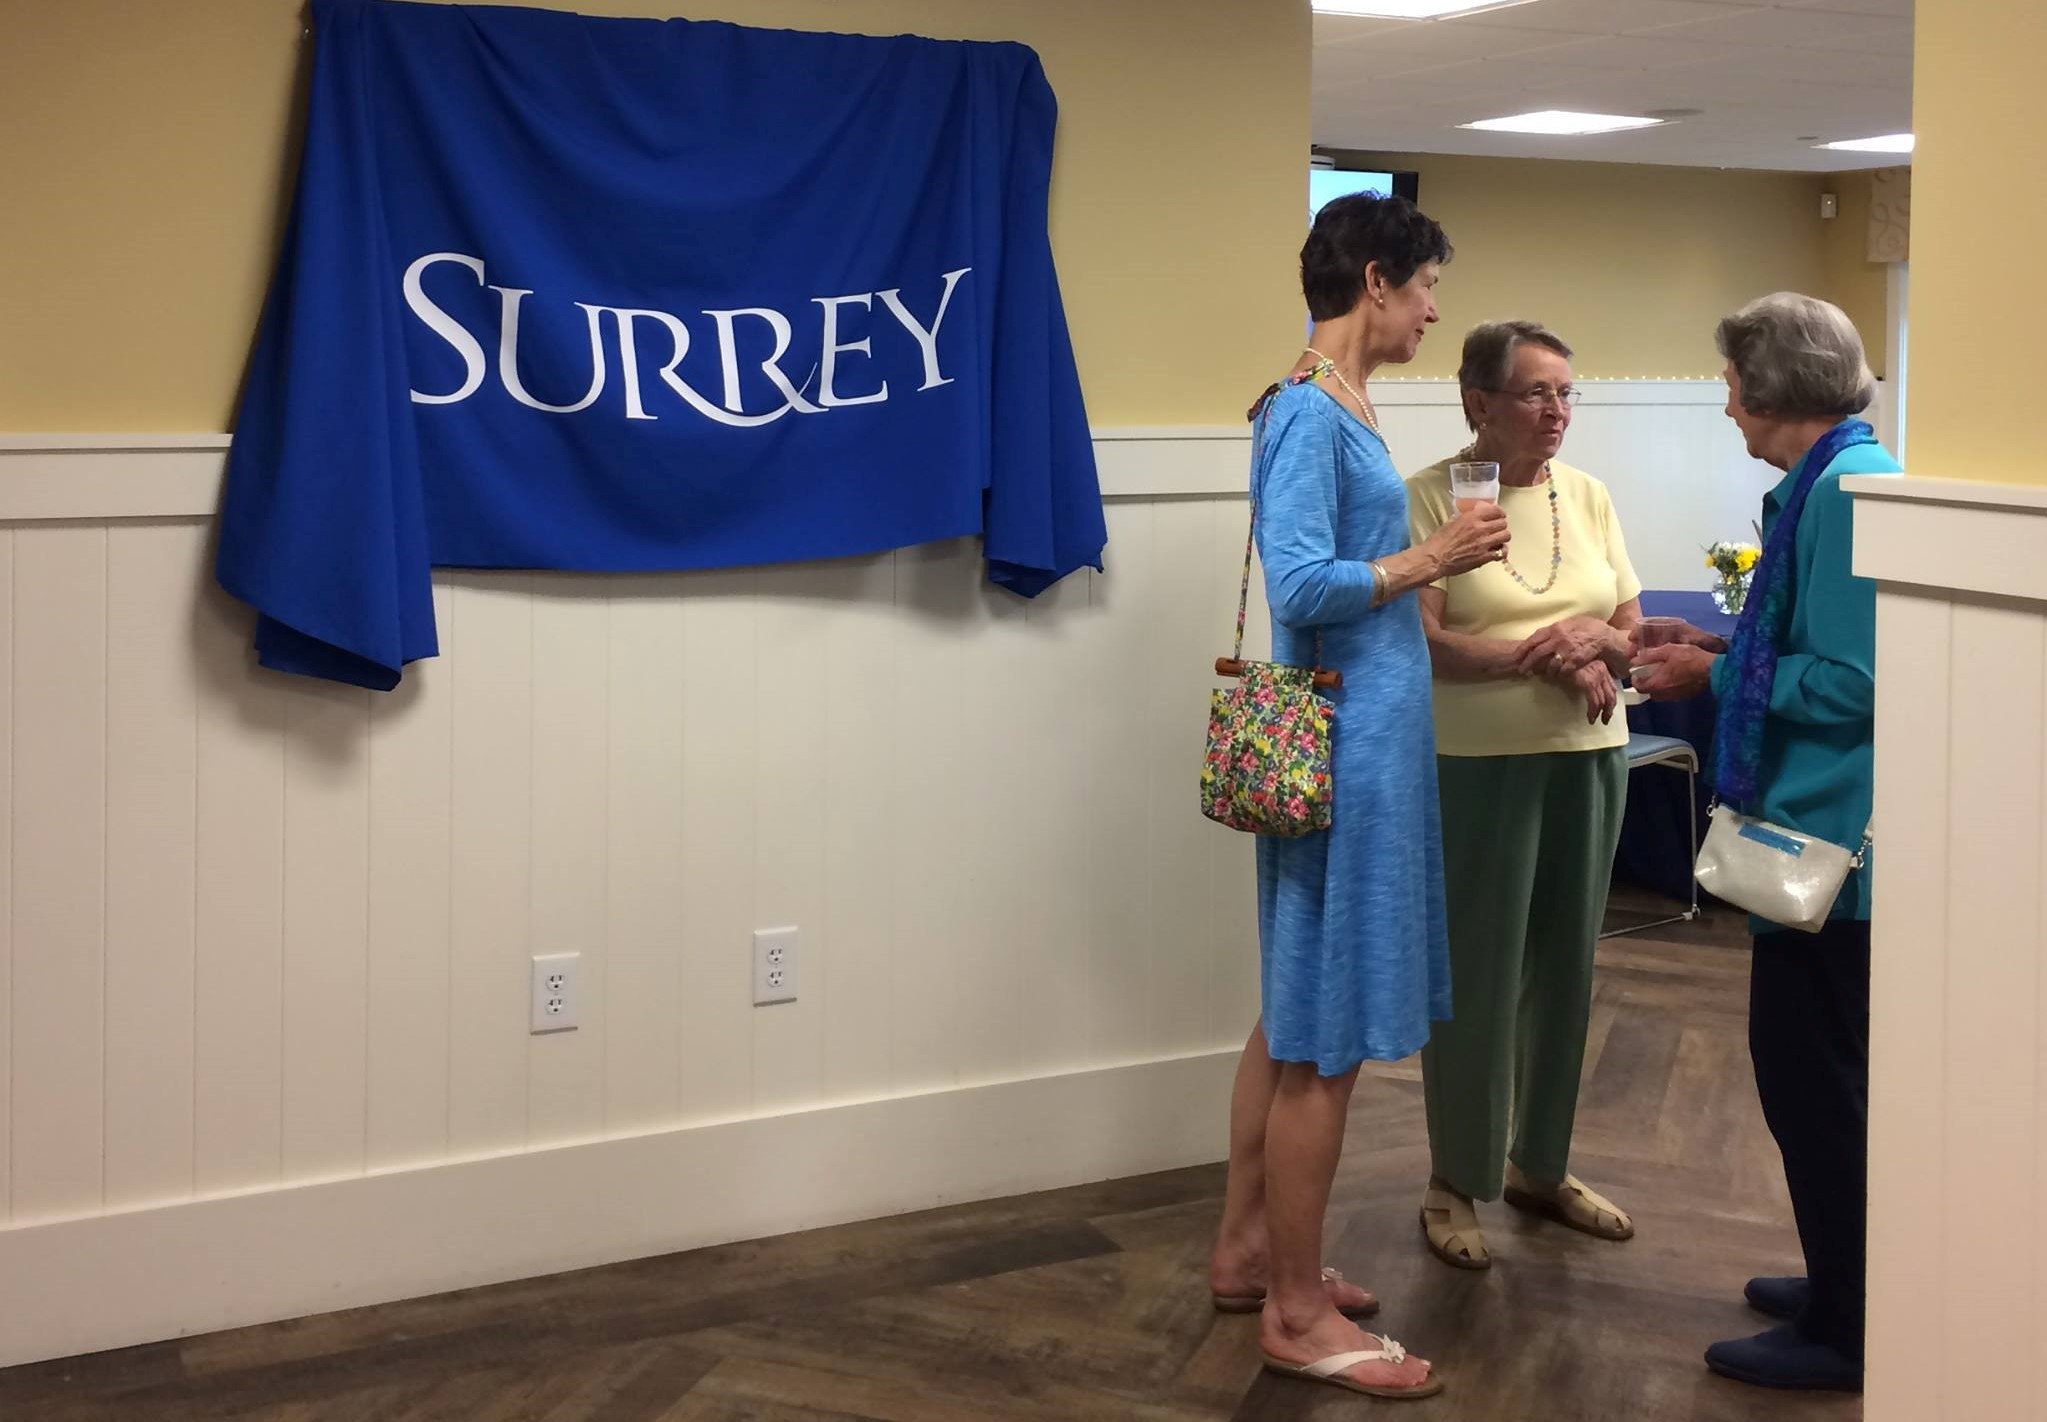 Surrey Services to Host Fashion Show with a Focus on Women of All Ages